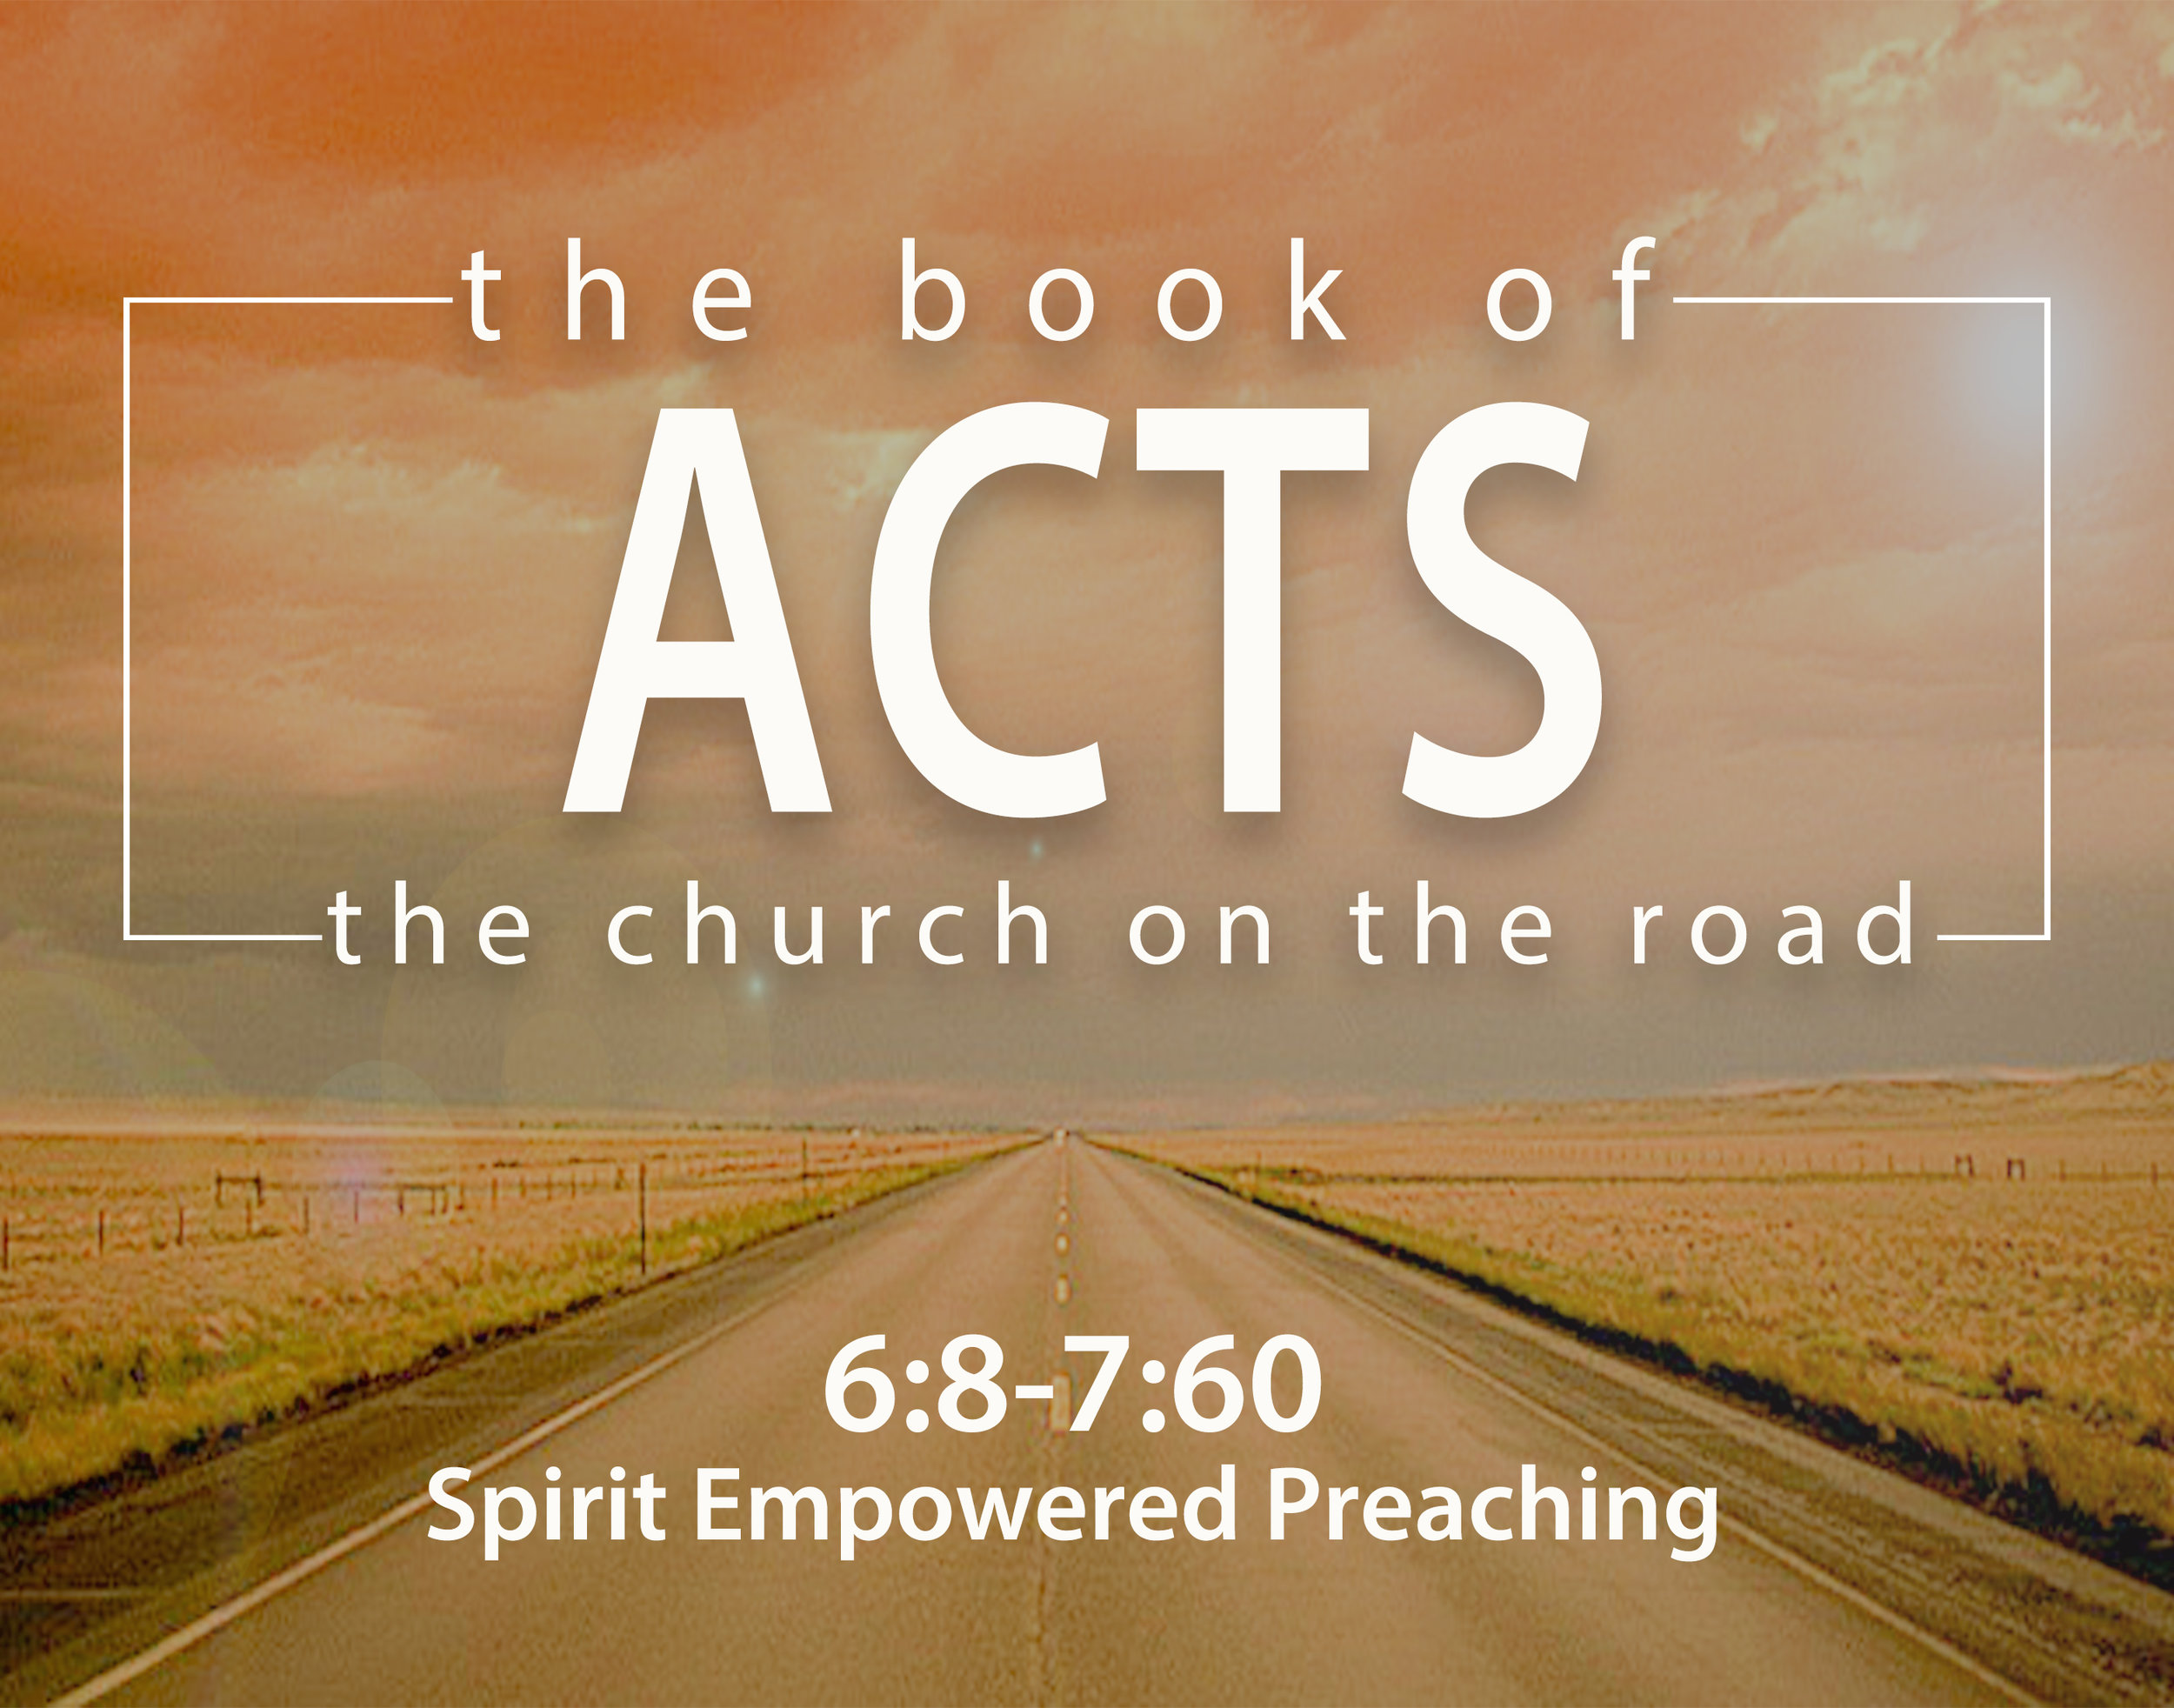 12Spirit Empowered Preaching.jpg